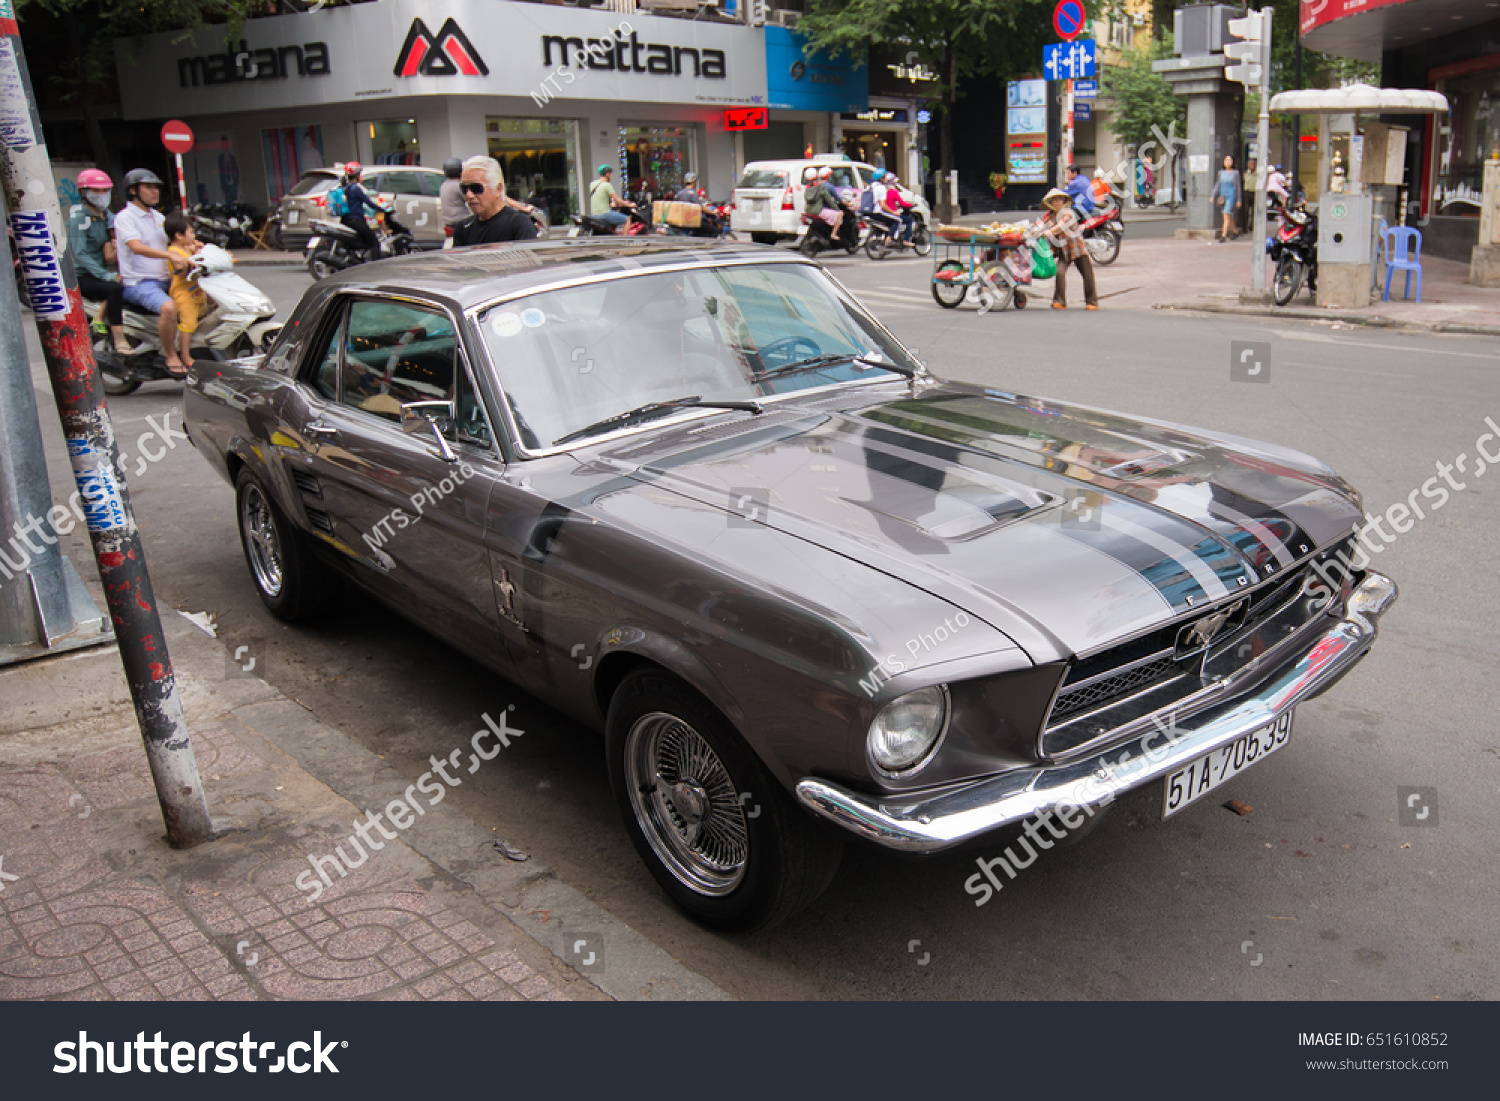 Ho chi minh vietnam january 02 2017 1967 ford mustang side view